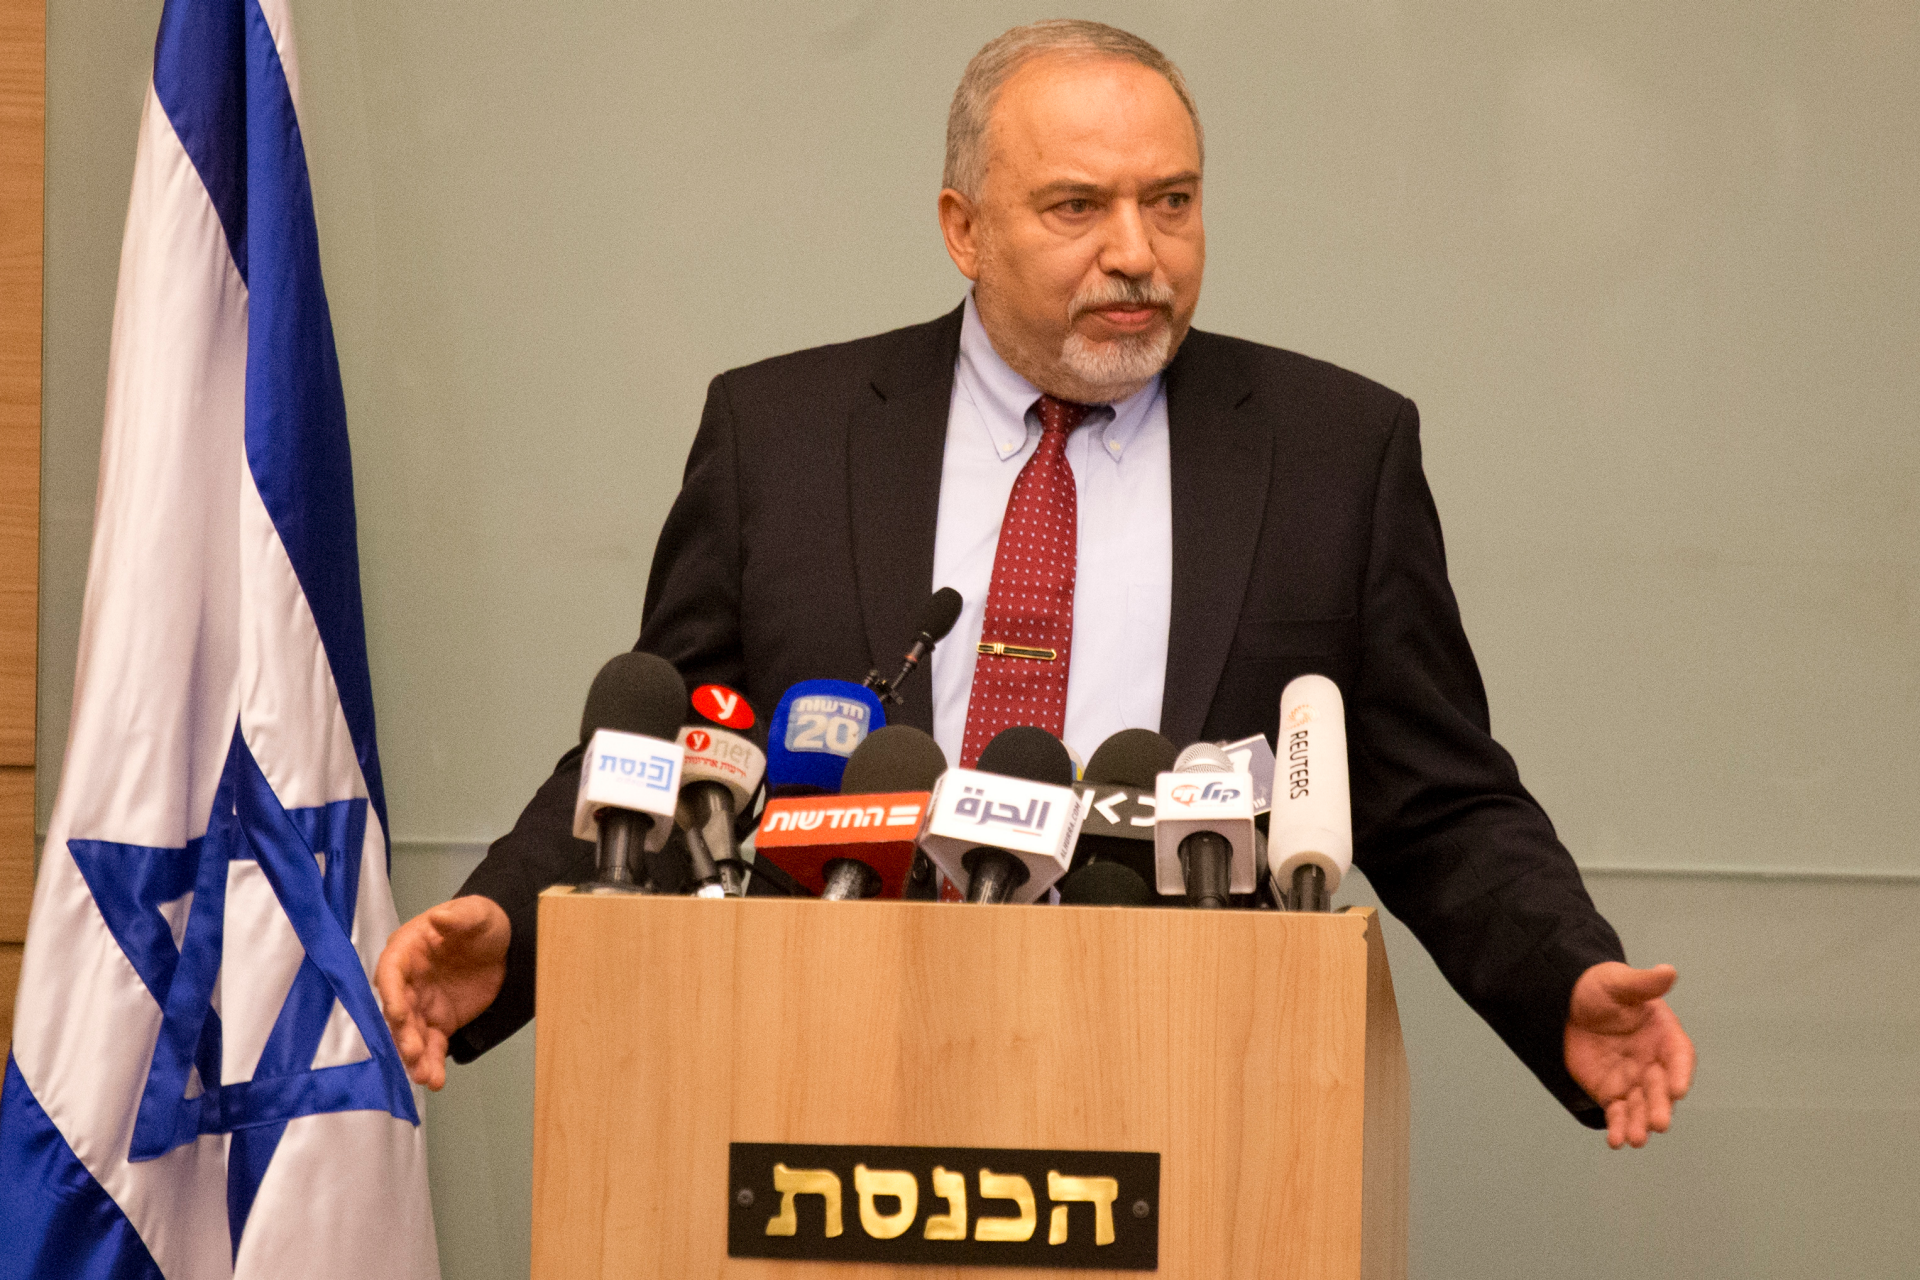 Israeli elections seem likely after Lieberman's resignation